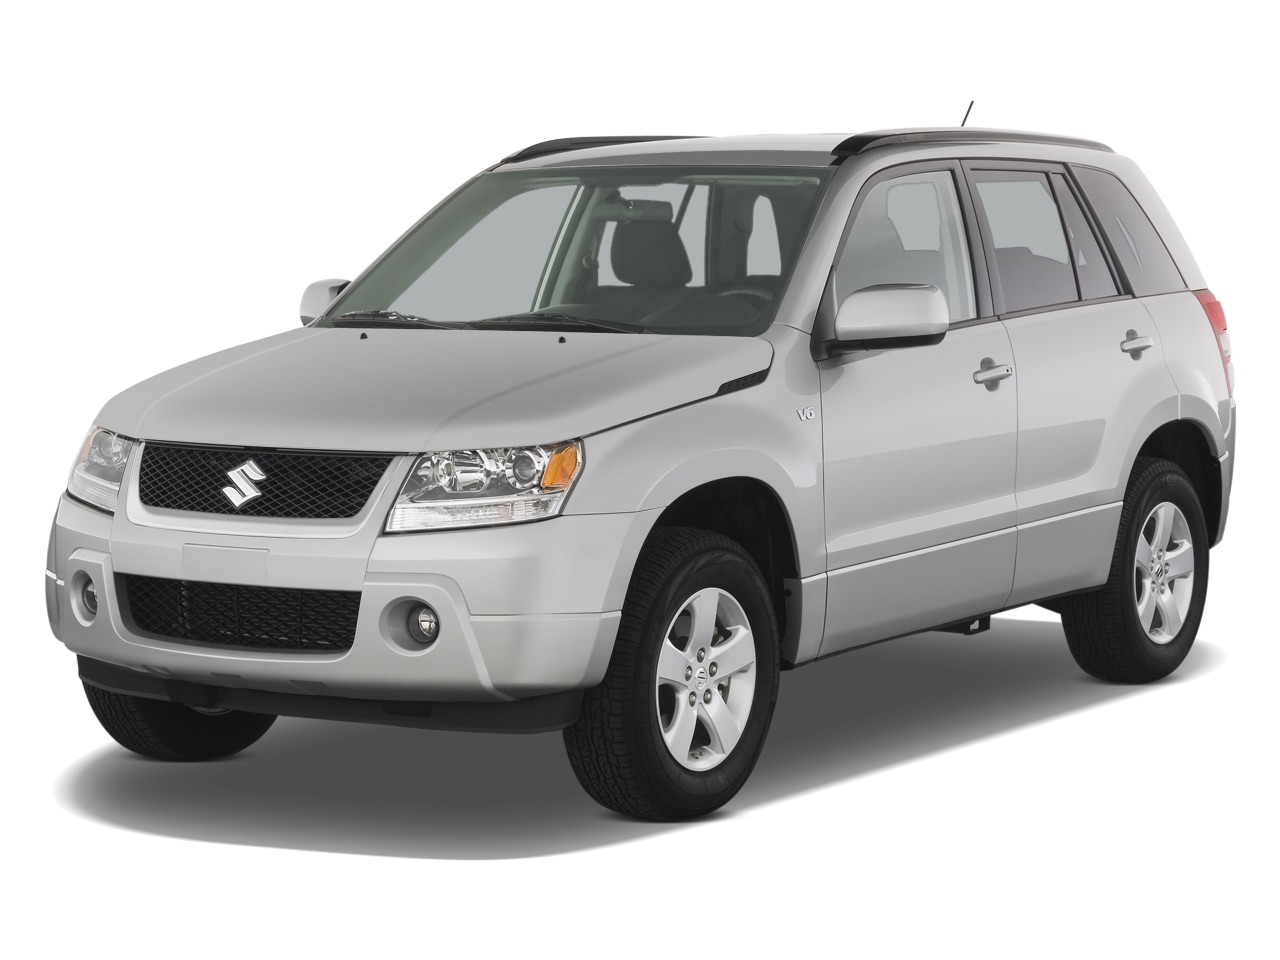 Suzuki Sidekick/Vitara/Grand Vitara/XL7 1984-2014 Workshop Repair & Service